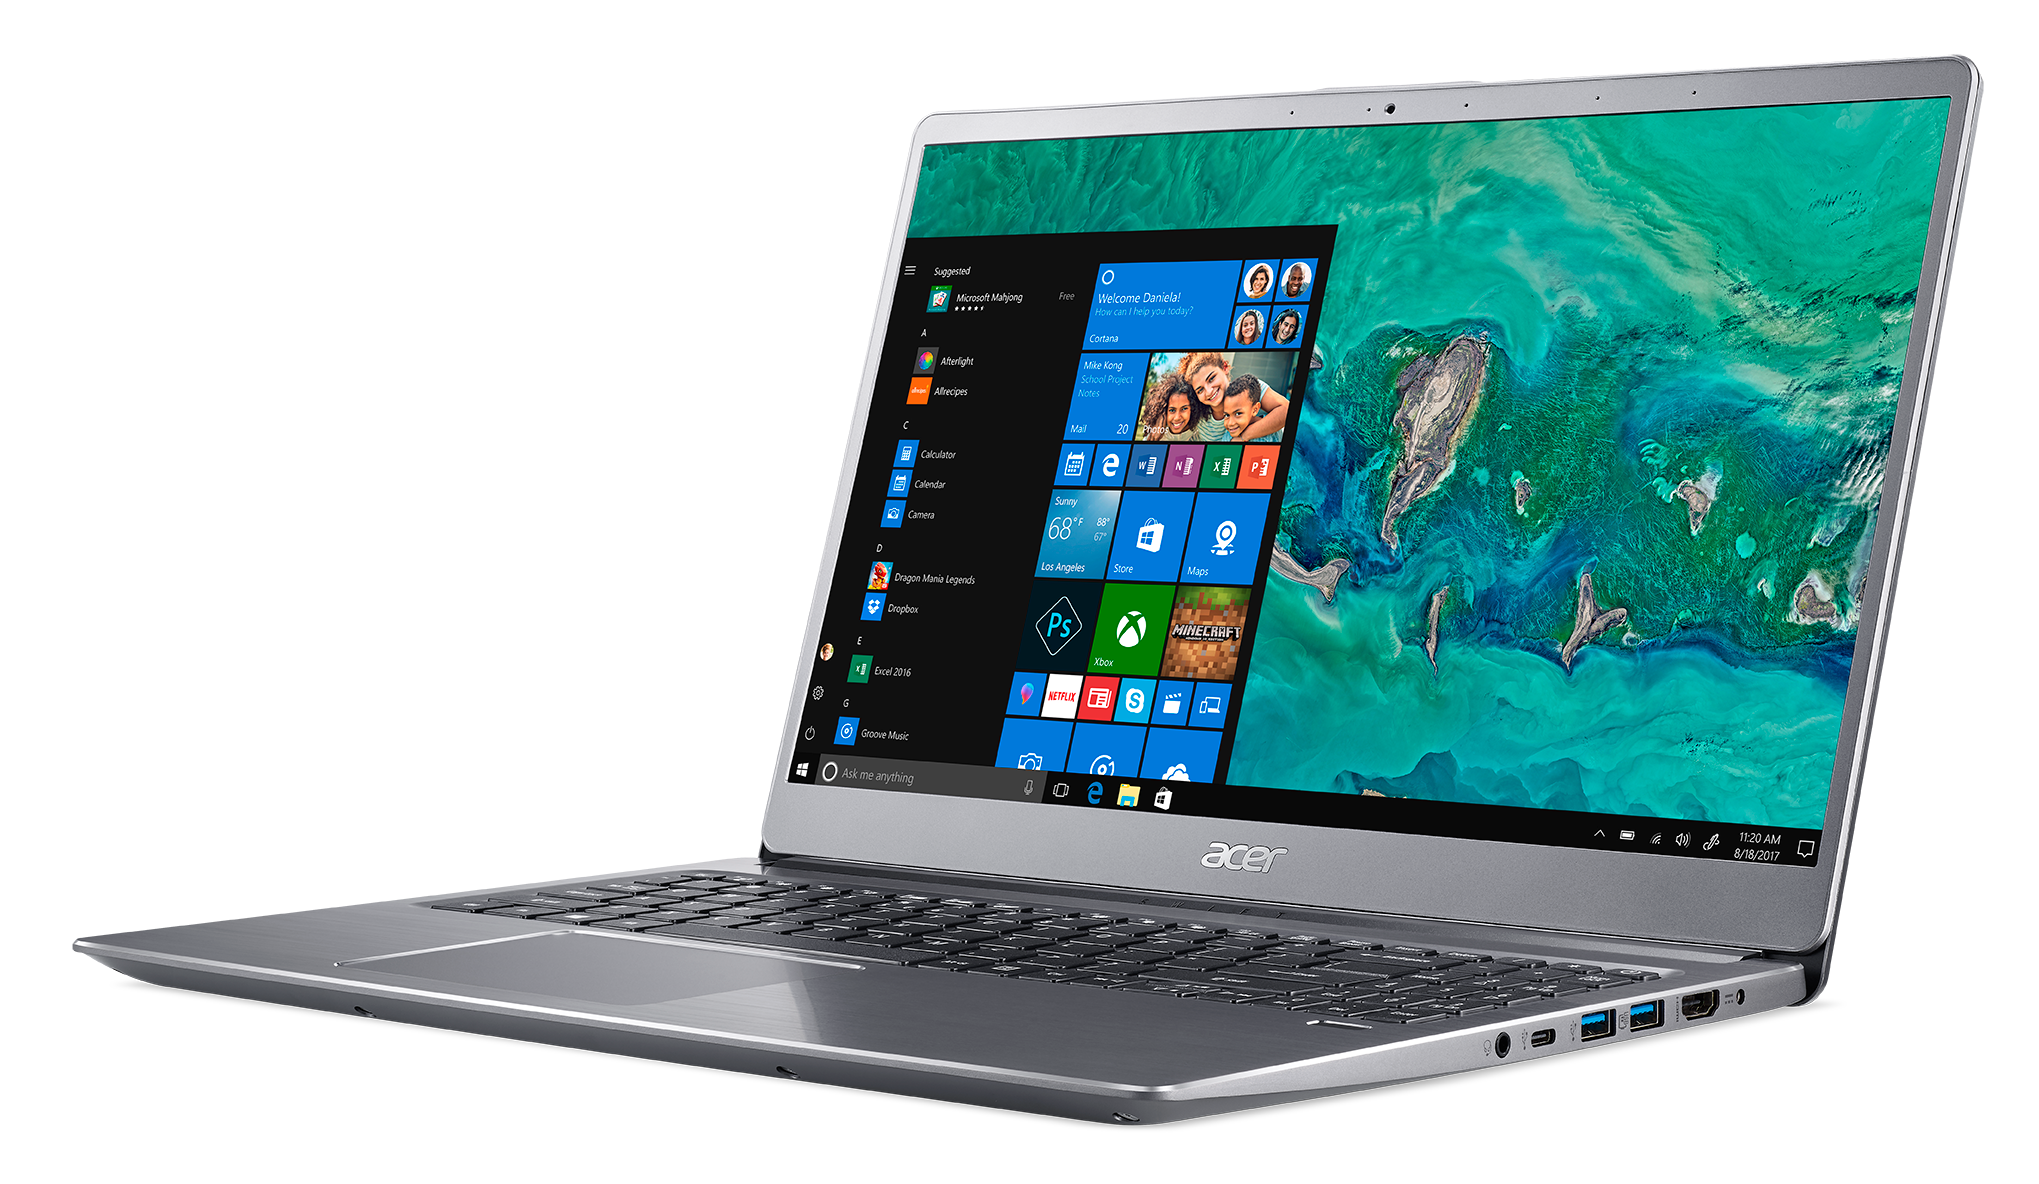 Buy Acer Swift 3 156 Inch I5 8gb 256gb Laptop Silver Laptops 2 Way Hdmi Switch Argos And Netbooks